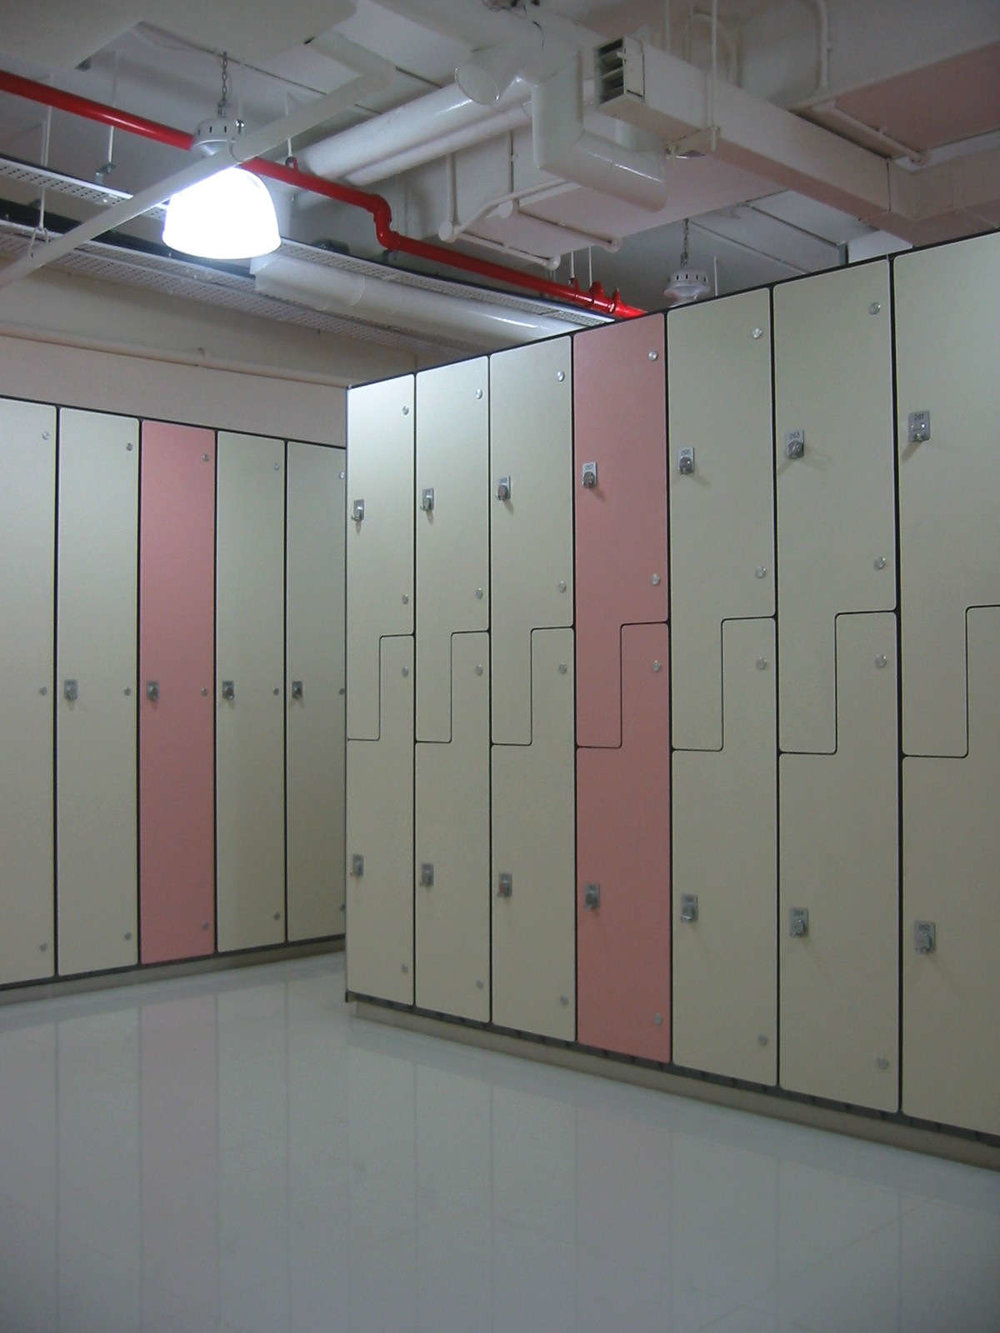 Shangri-la Hotel - BOH staff lockers, modular, easy install components with custom phennolic housing for ease of cleaning and maintenance.